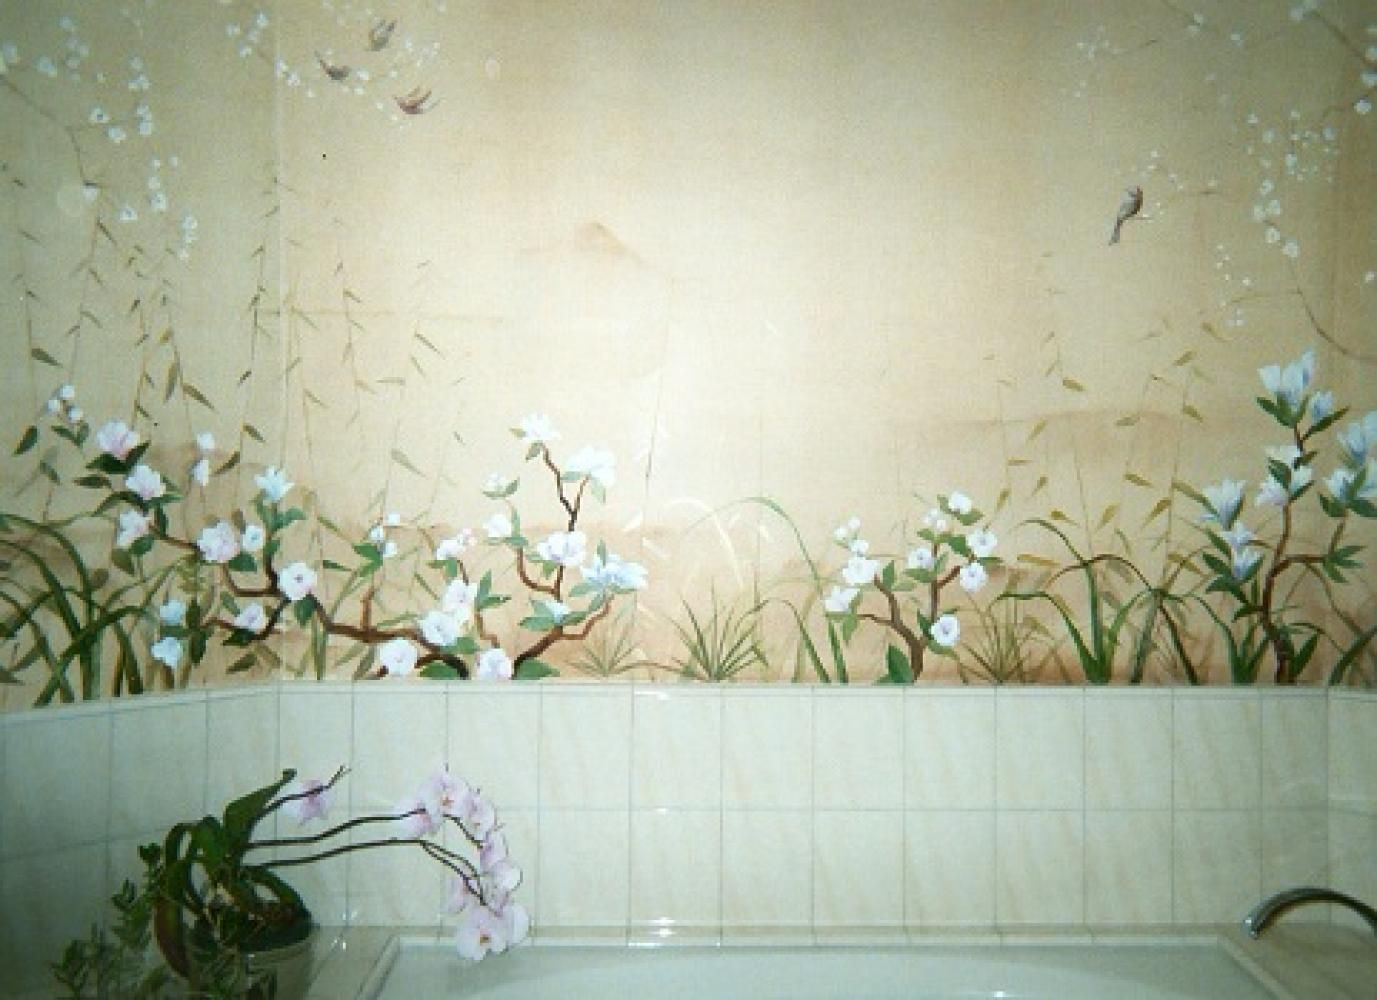 Japanese Mural For A Bathroom Hand Painted Bathroom Mural By Alexandra Pastorino